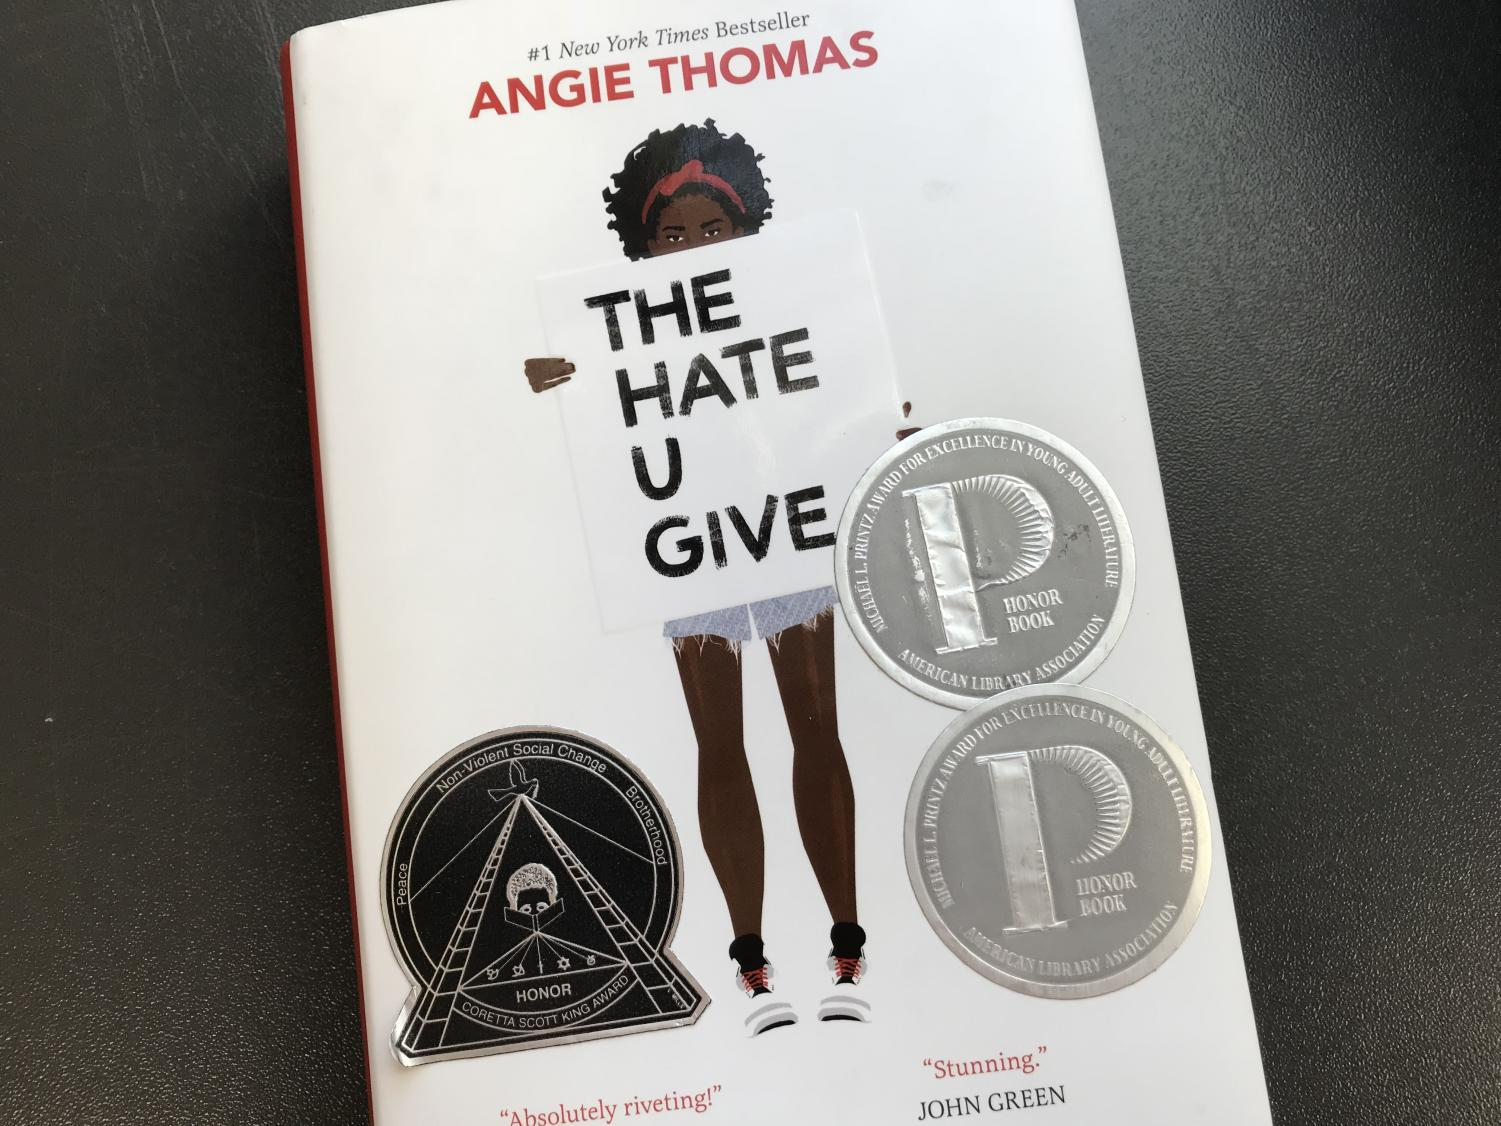 The Hate You Give, based on the YA novel by Angie Thomas was released this past weekend in theaters.